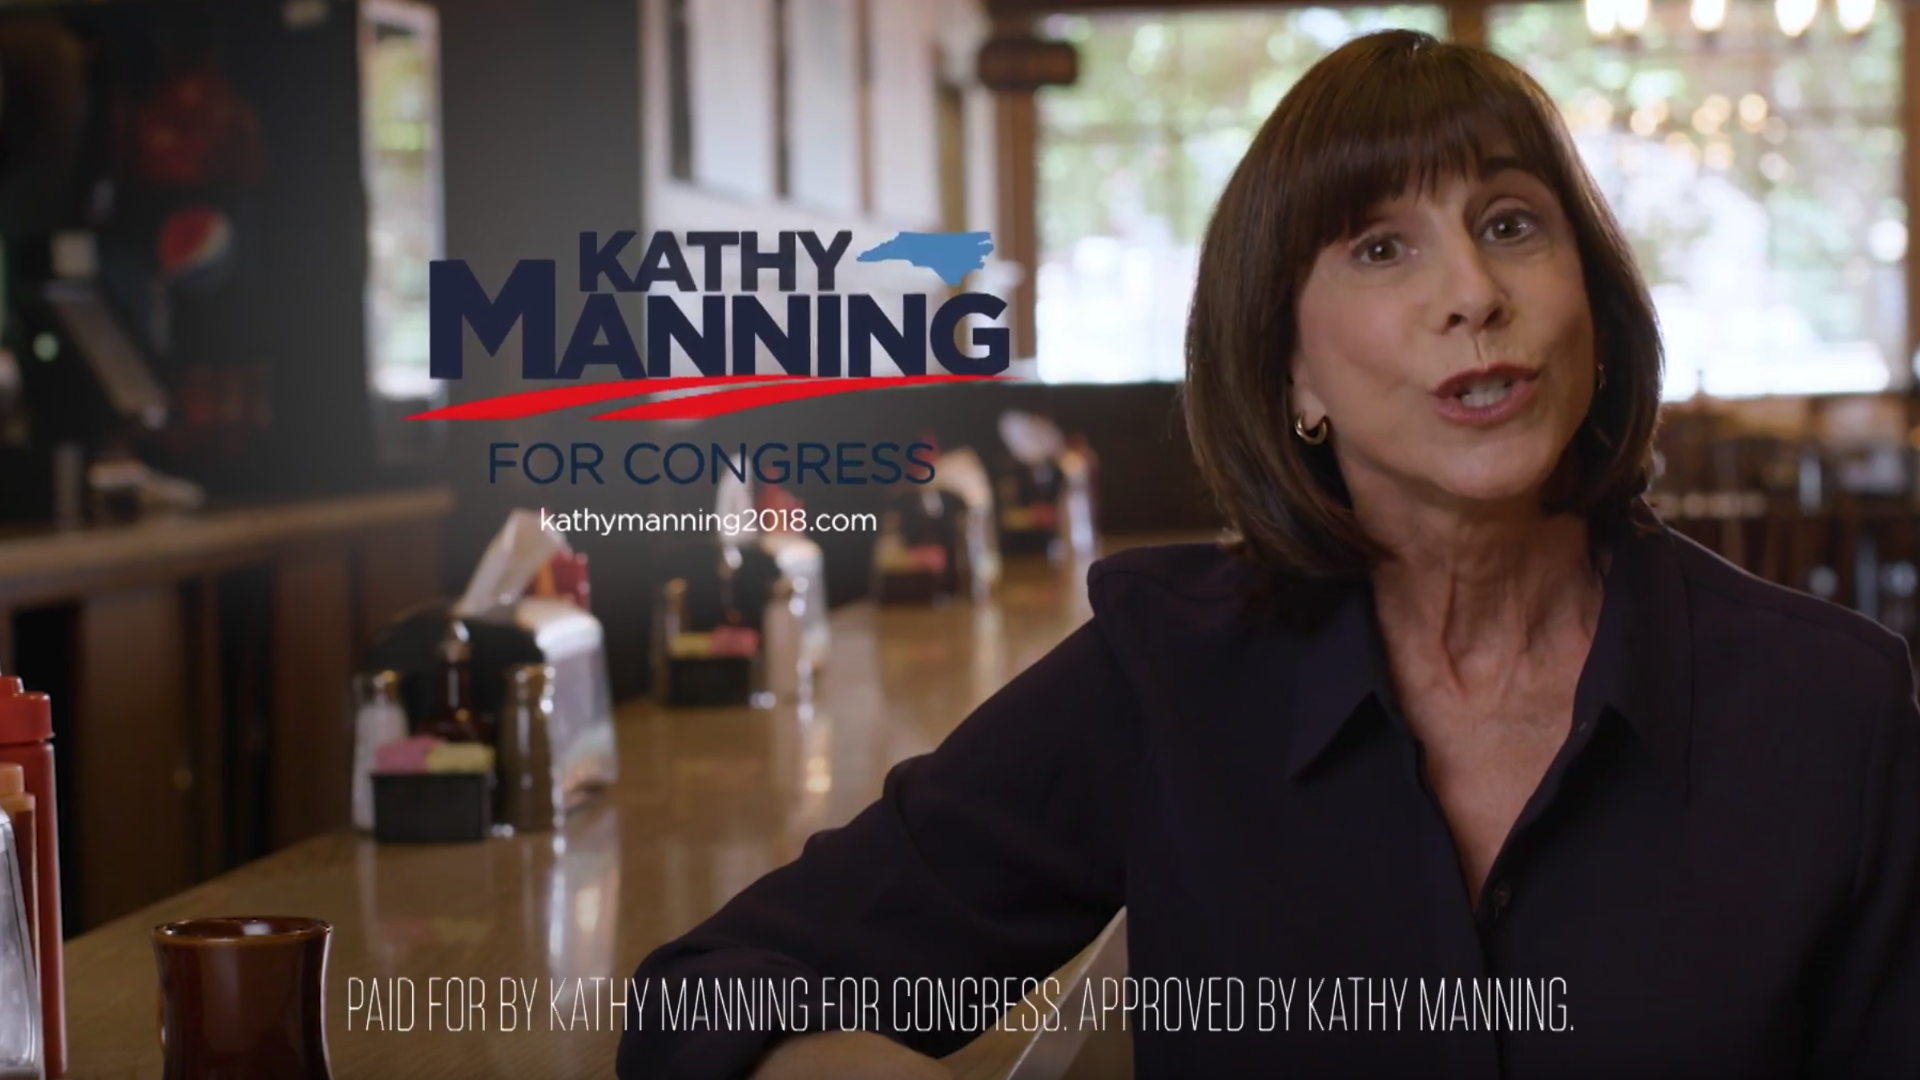 An ad from the Kathy Manning campaign released in August ( source )